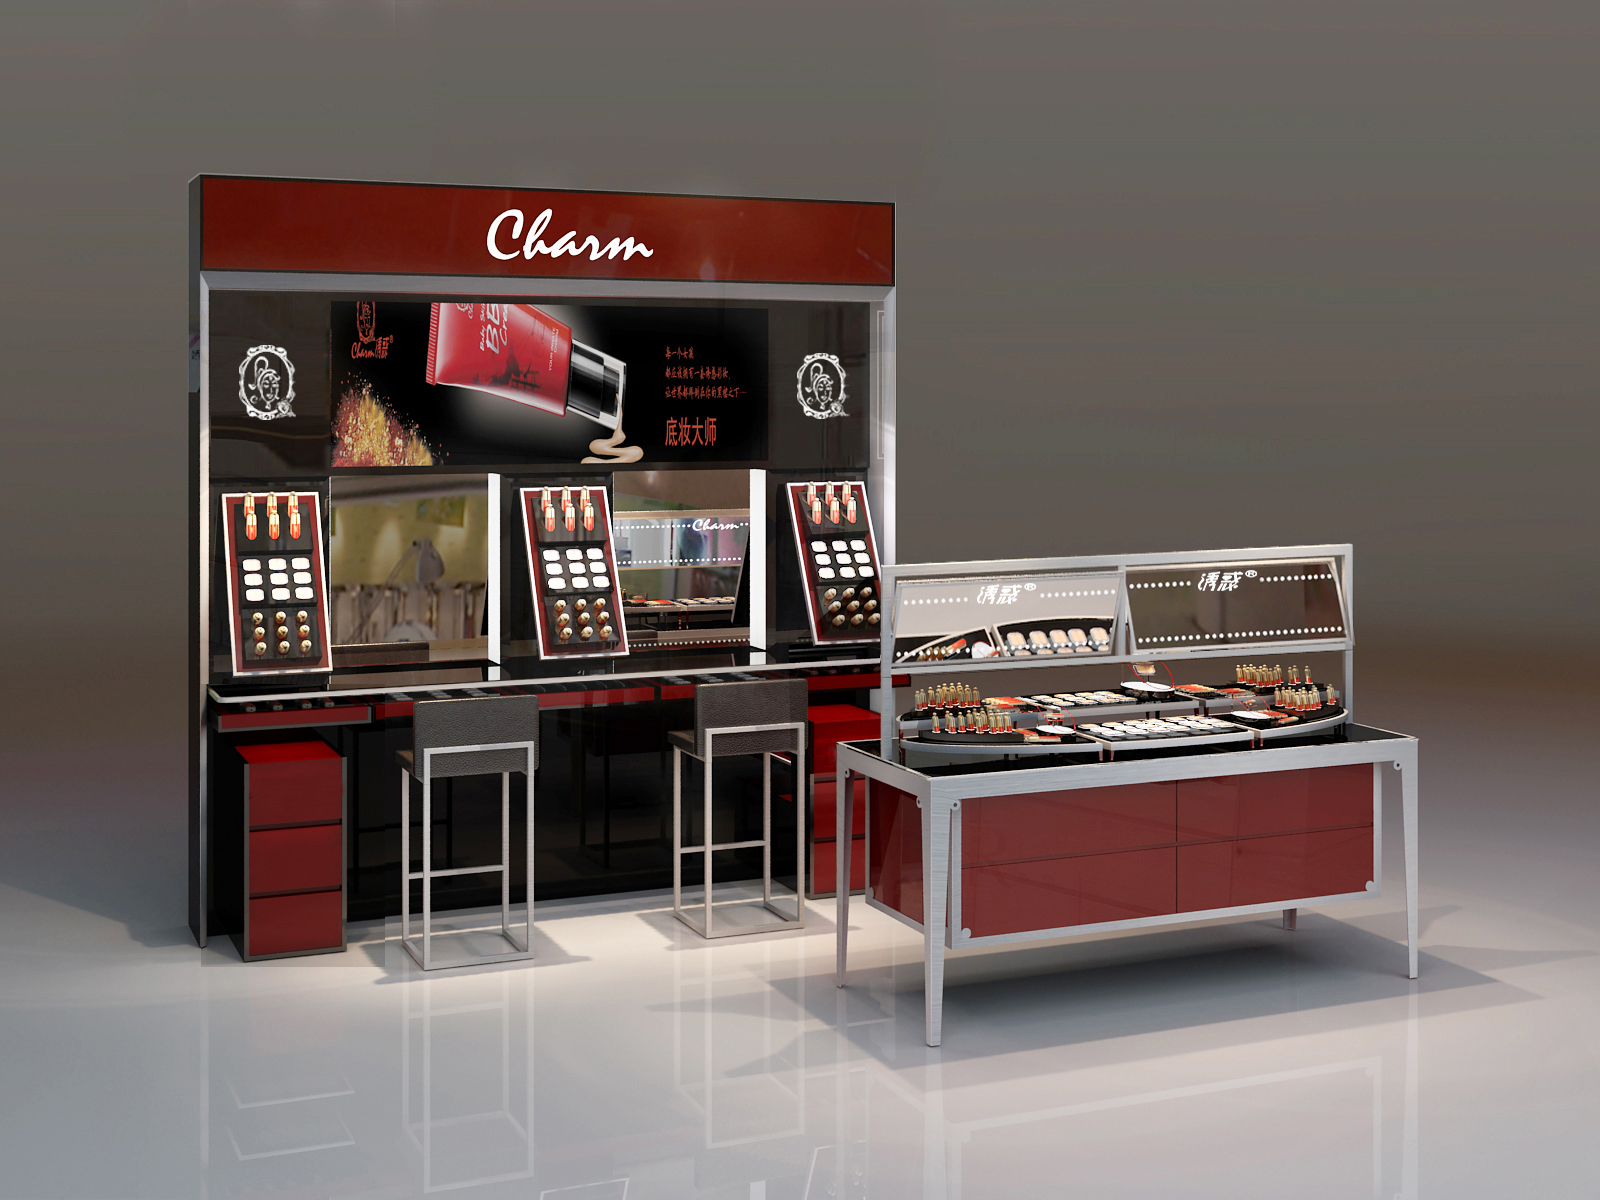 Cosmetic Exhibition Stand Design : New design cosmetic mdf makeup product display stand